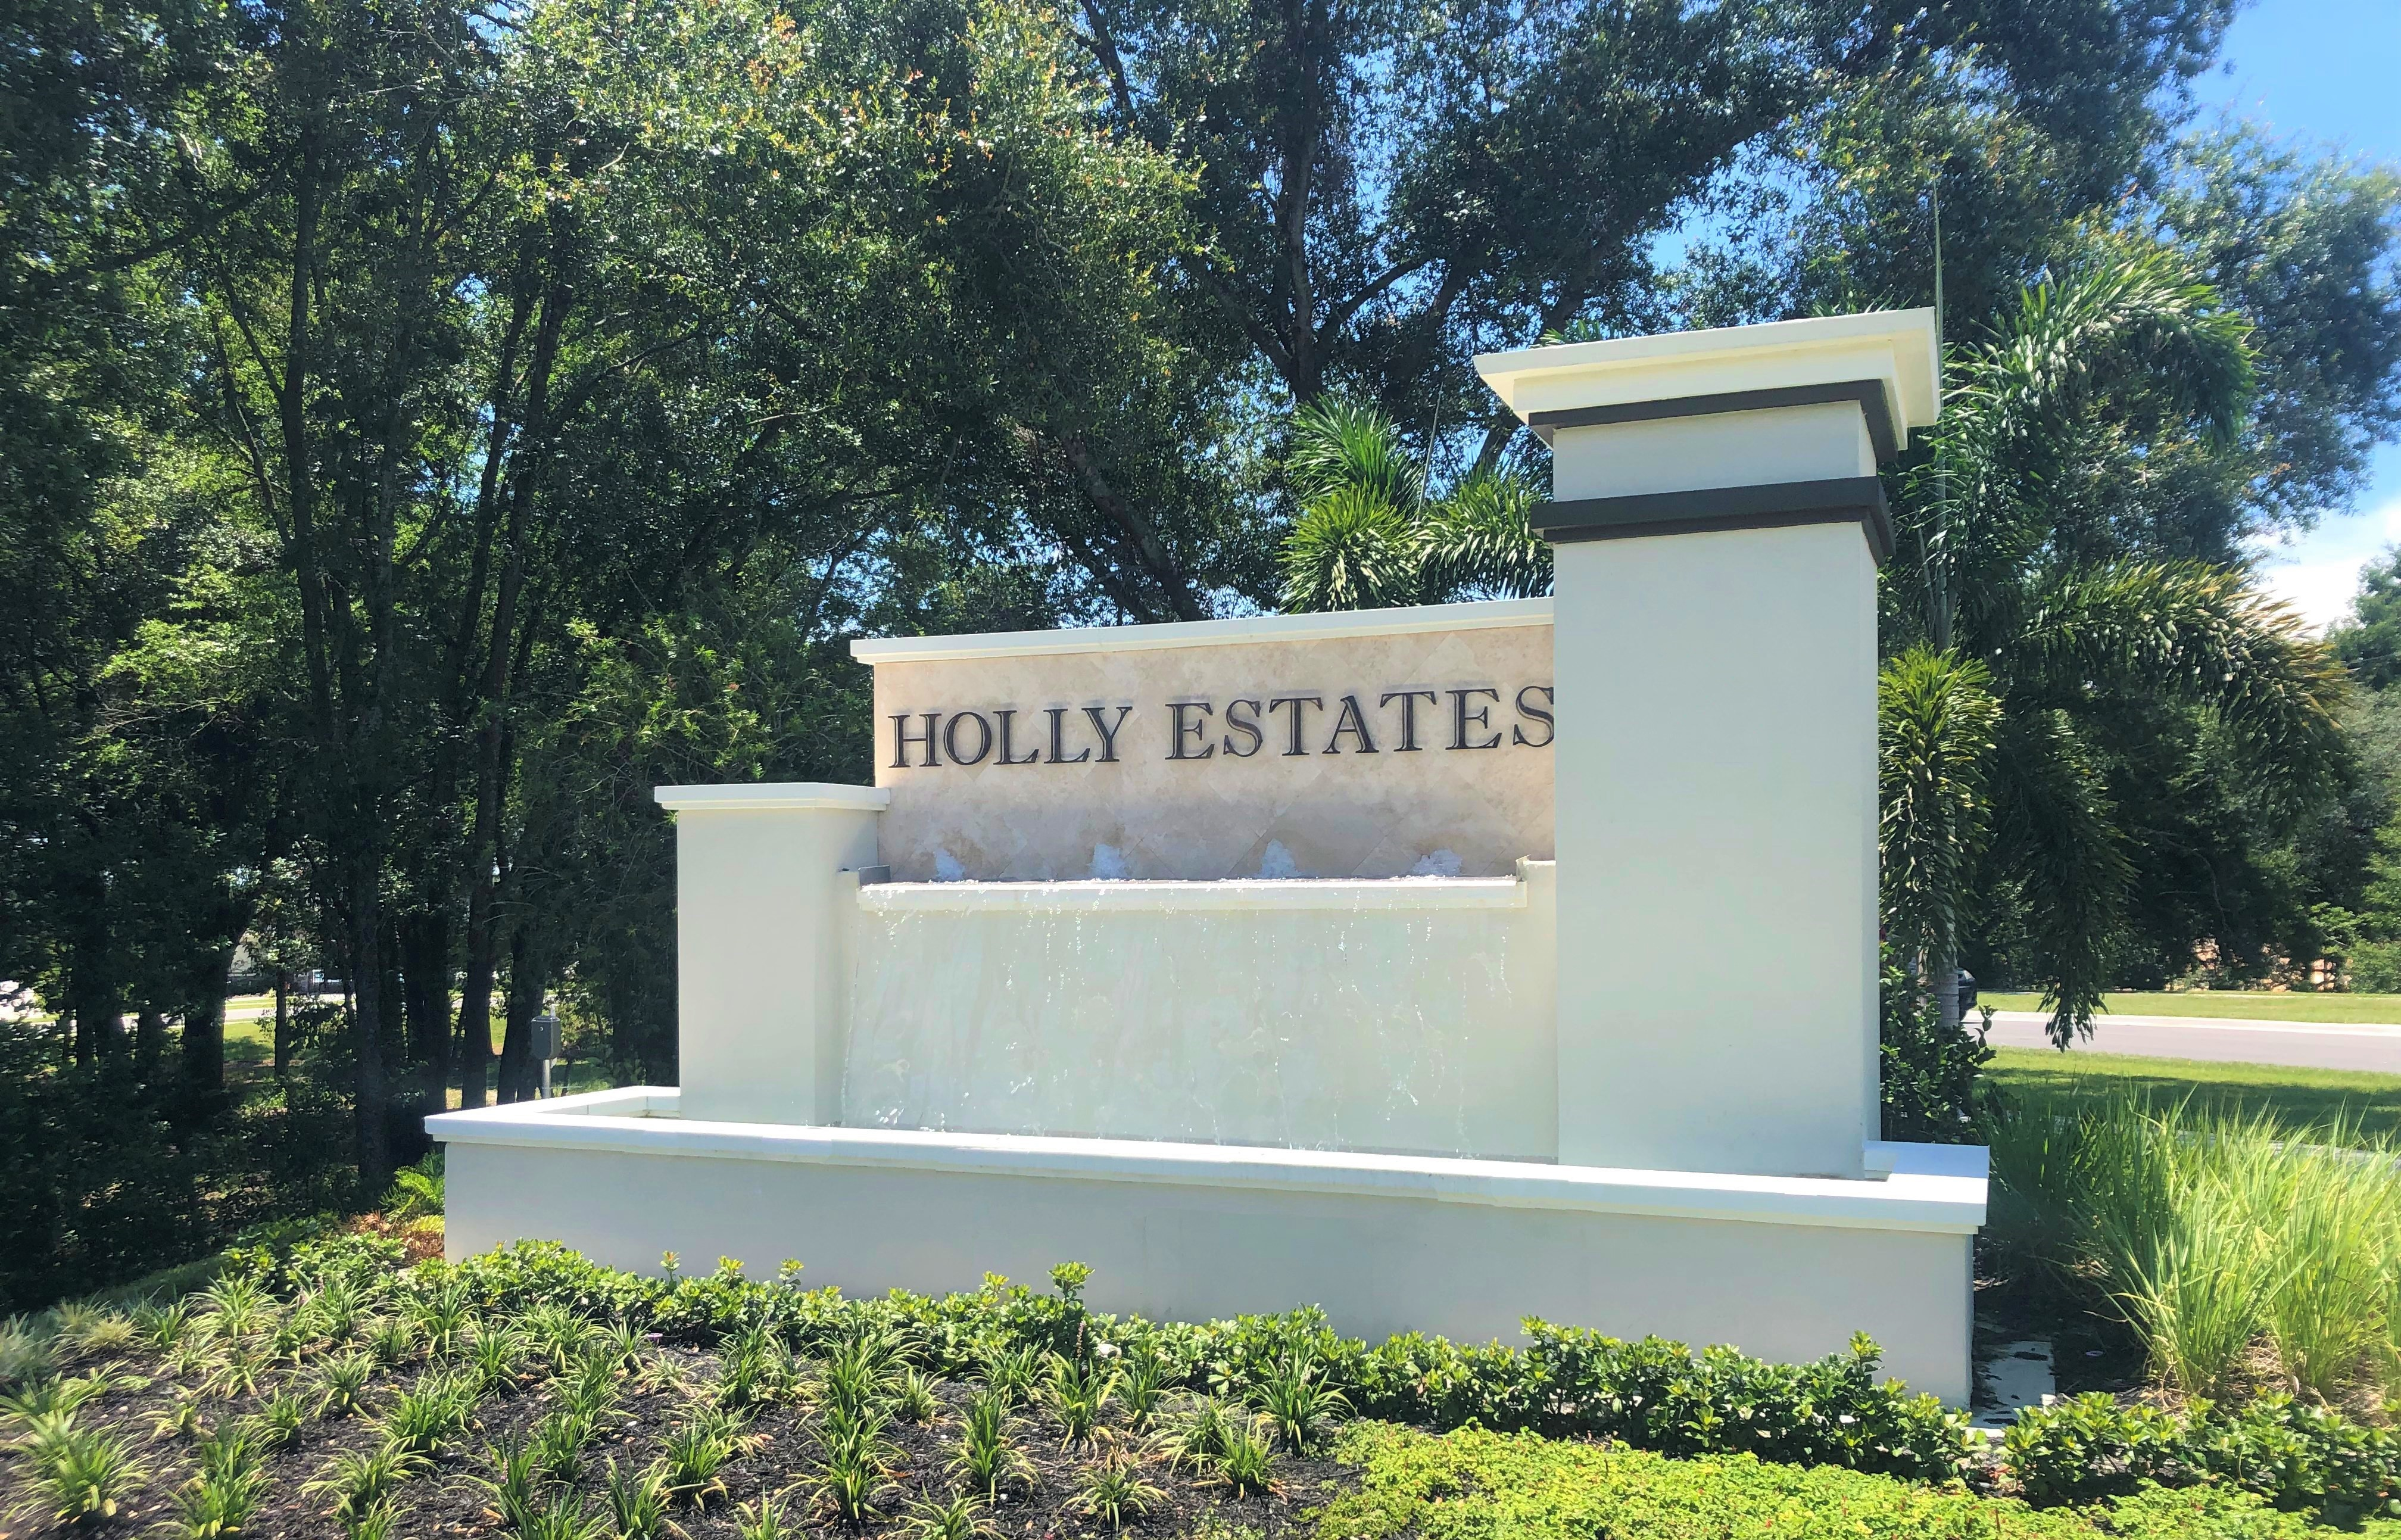 Holly Estates